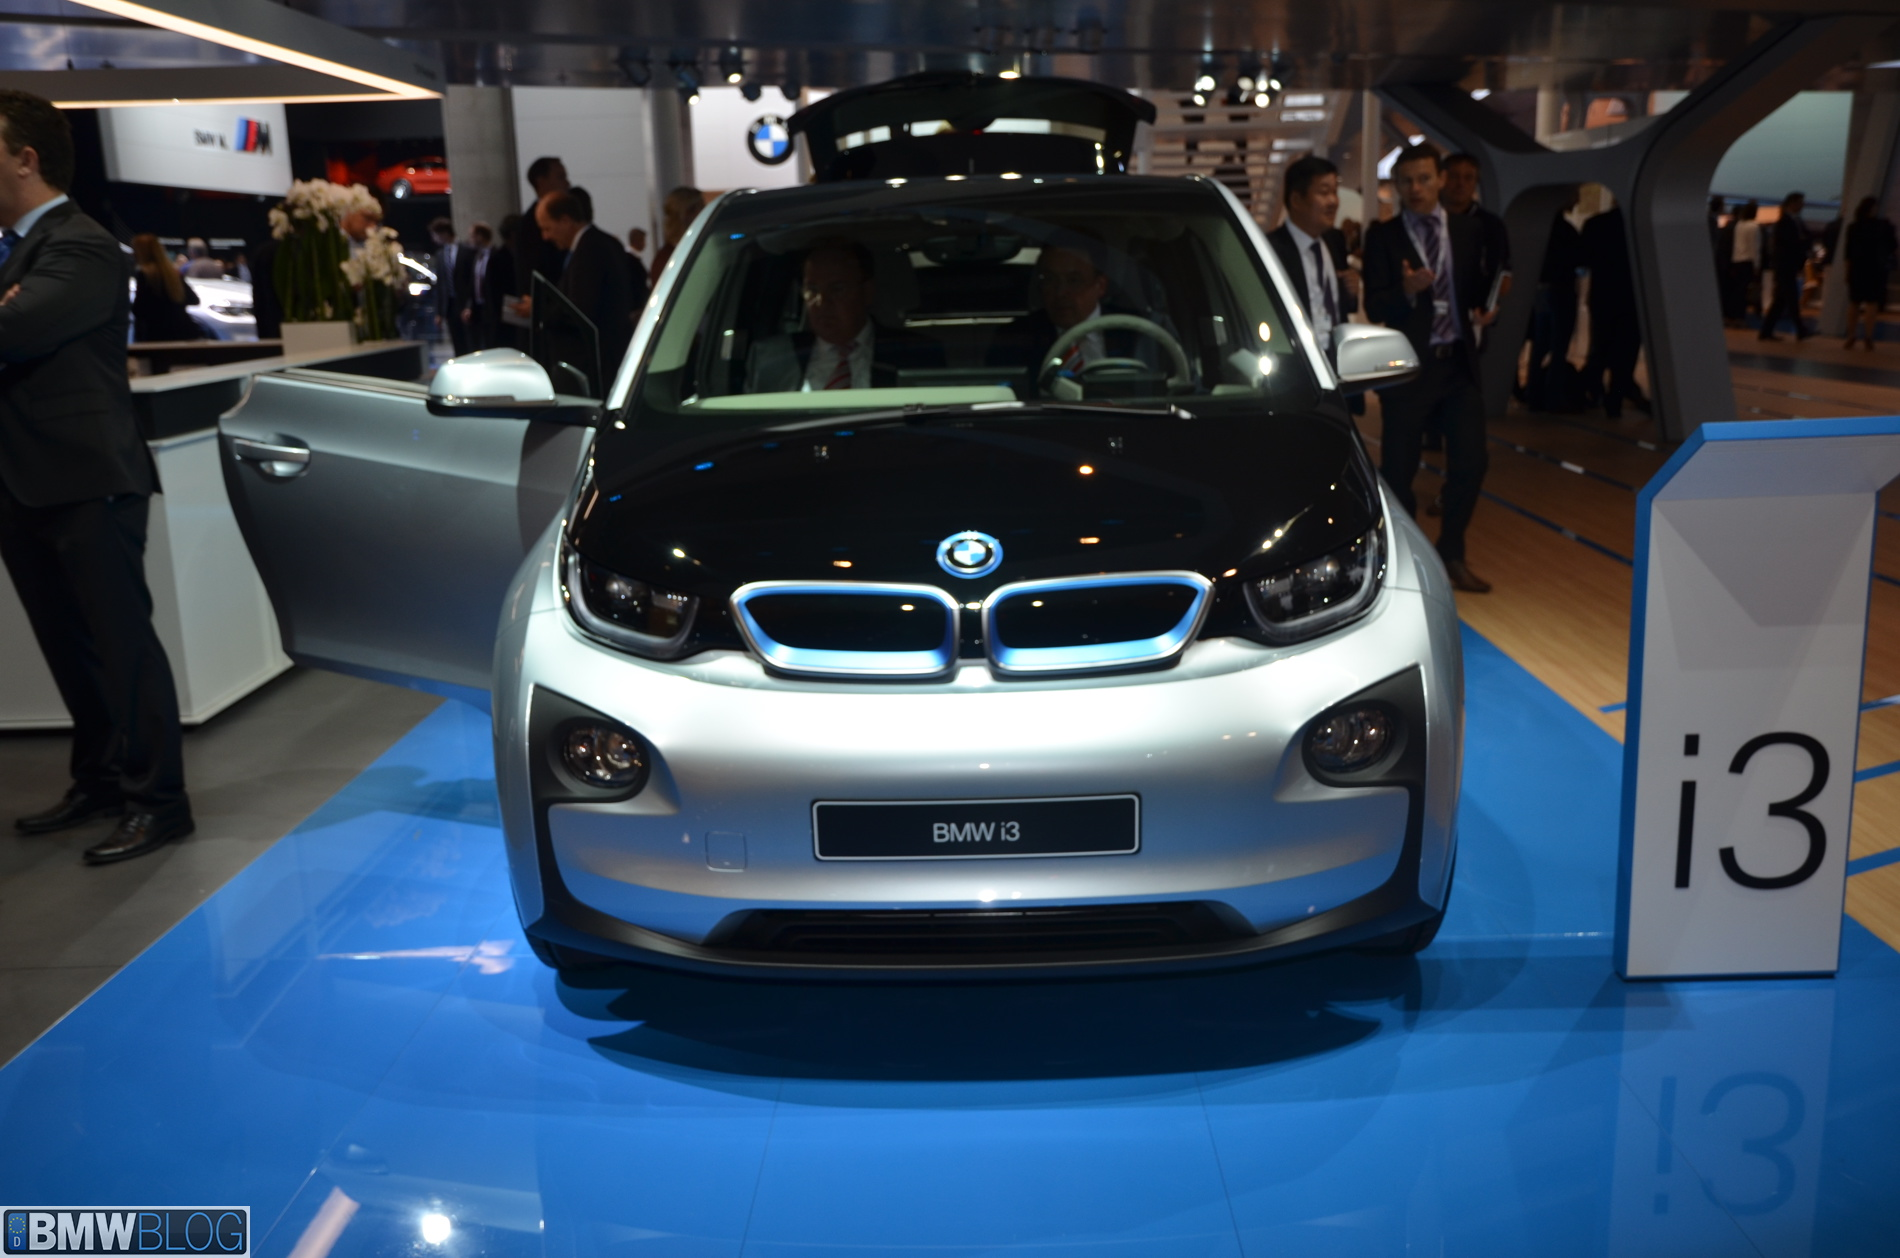 2014 bmw i3 interior exterior images 01